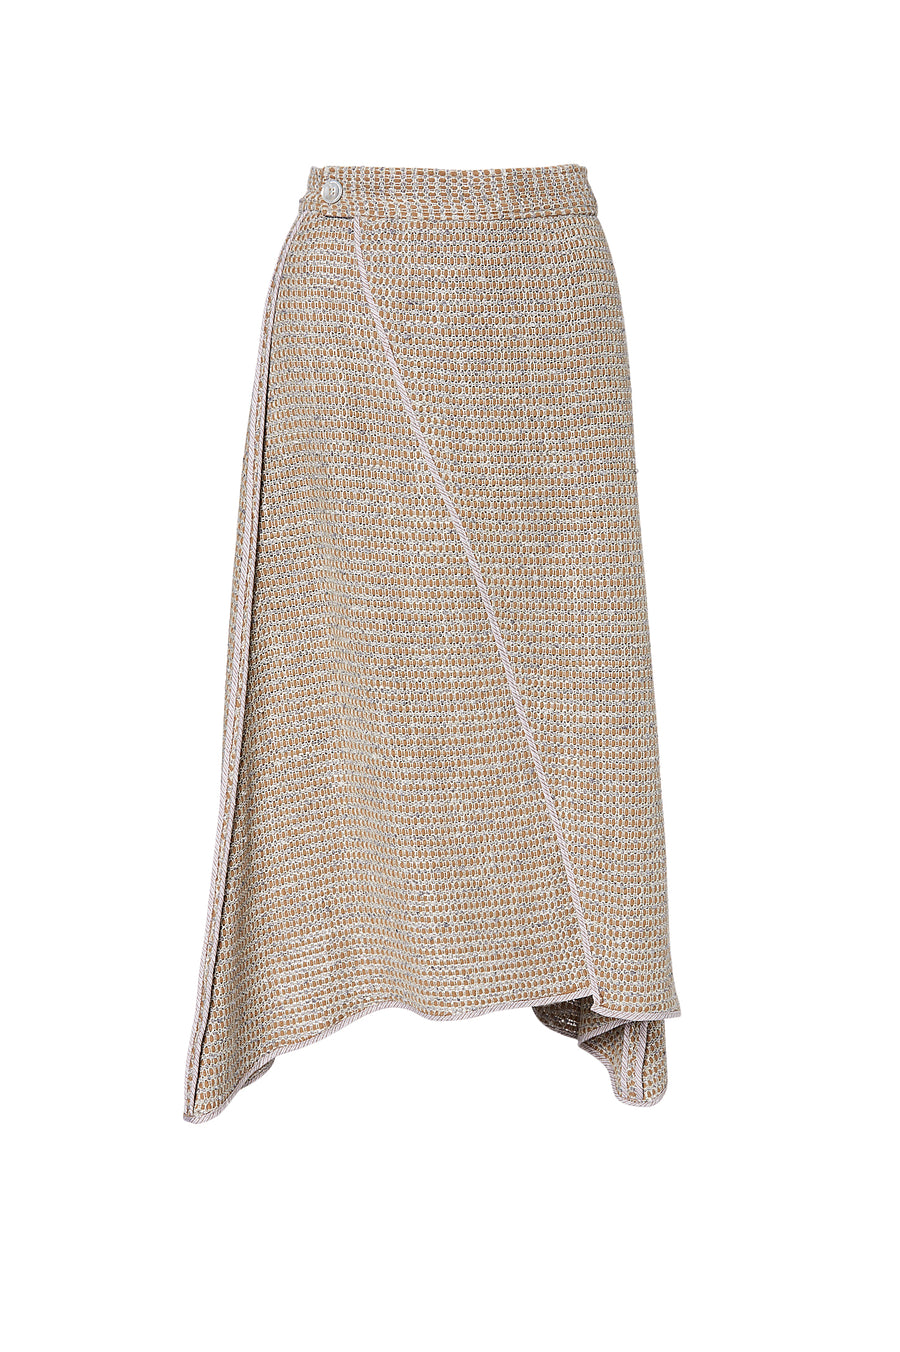 BASKET WEAVE SKIRT CAMEL, CAMEL color